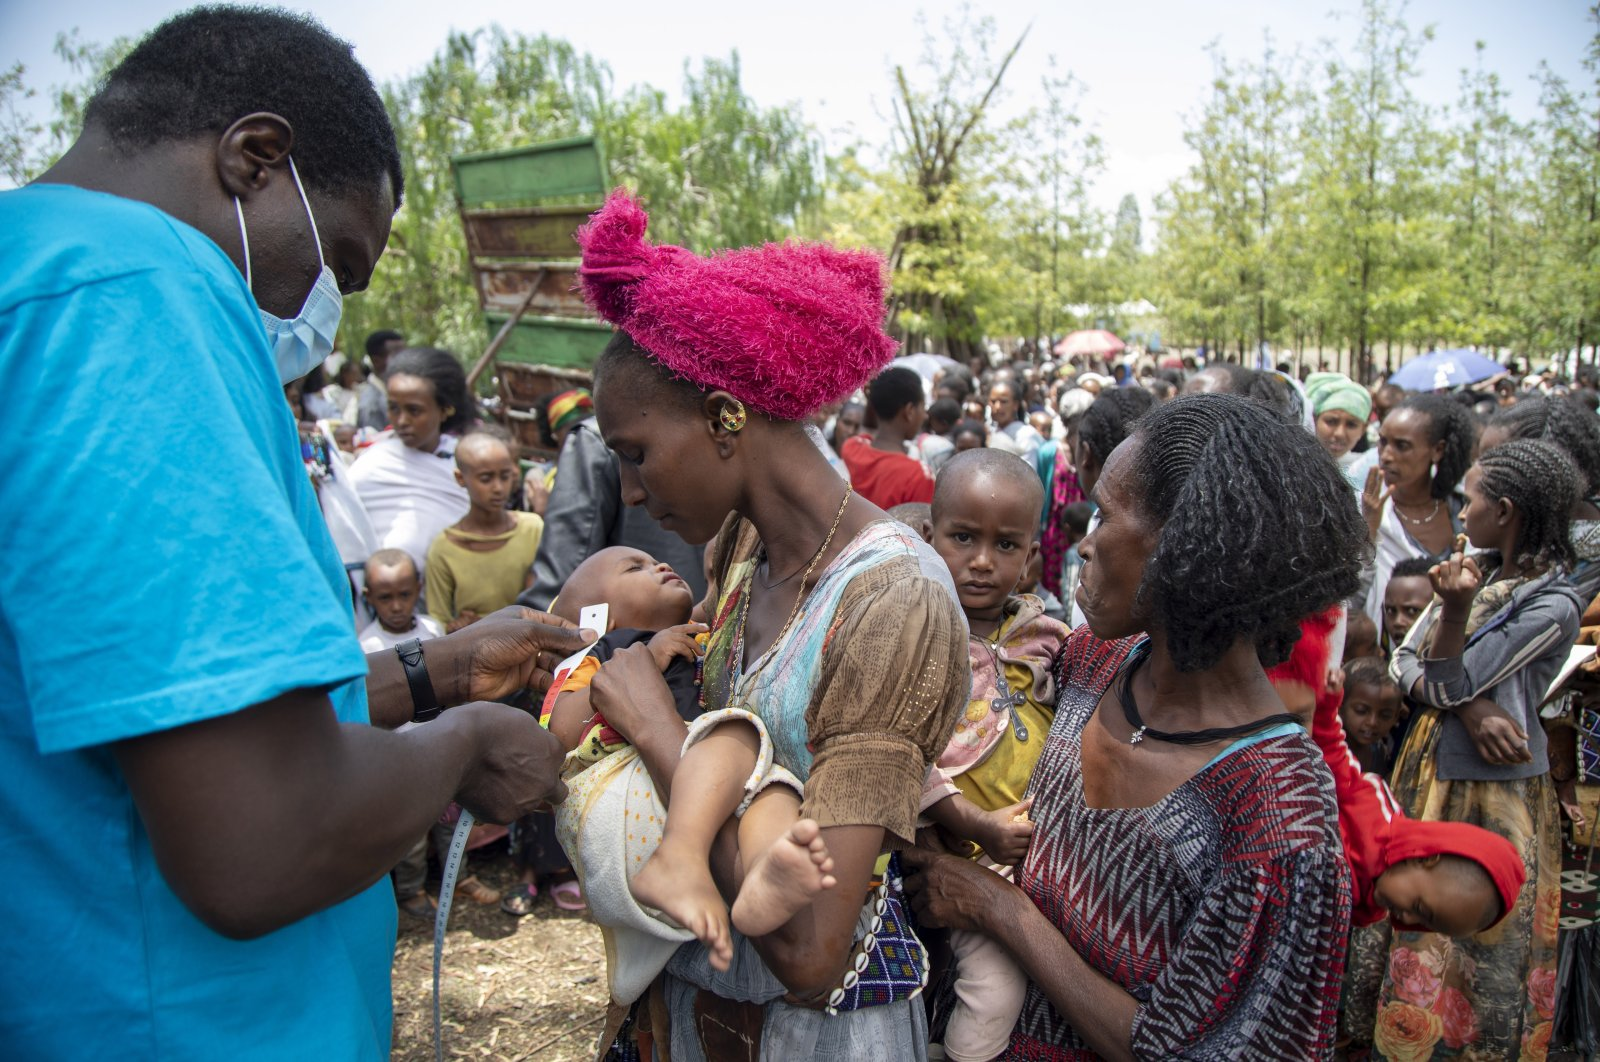 A Joint U.N. and international NGOs team rapidly respond to the humanitarian needs of communities affected by the ongoing conflict in Ethiopia's Tigray region, July 19, 2021.  (UNICEF via AP)